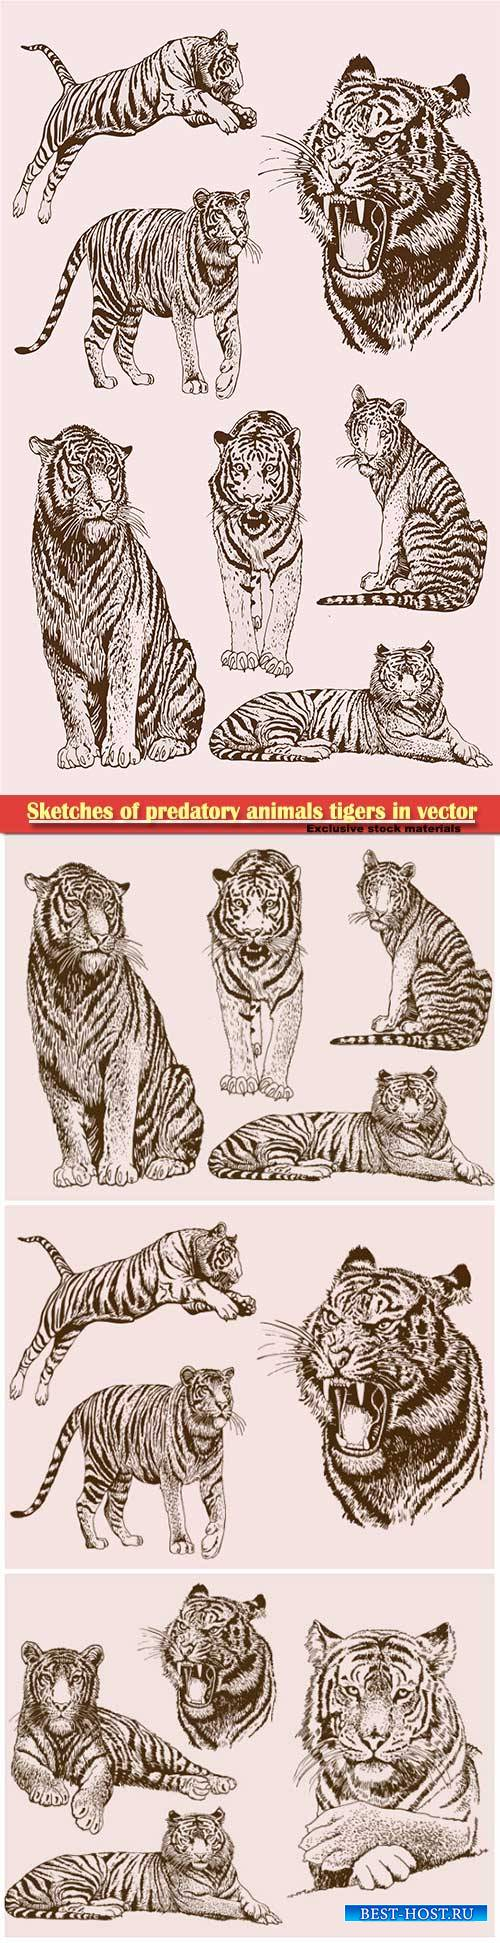 Sketches of predatory animals tigers in vector